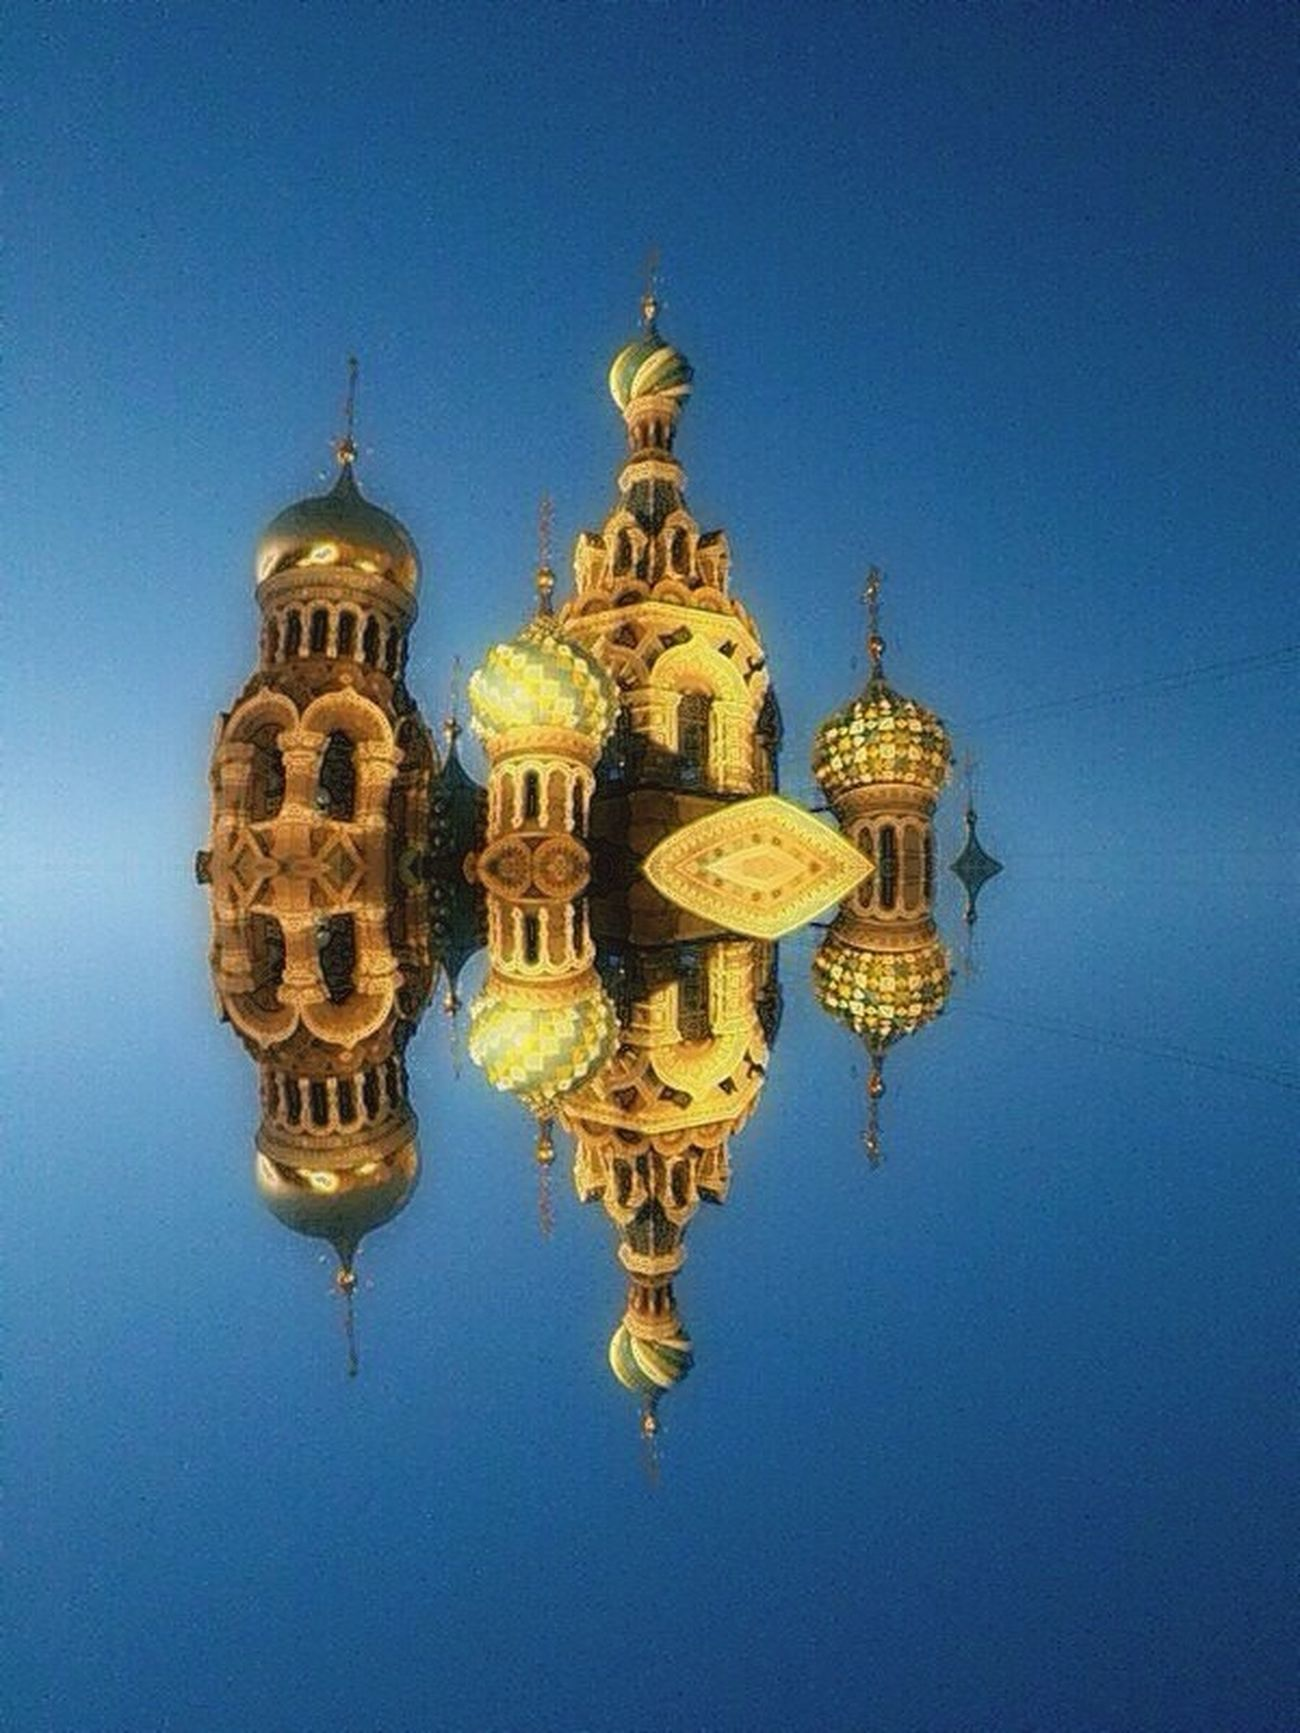 Stpetersburg Architecture Built Structure Reflection Building Exterior Religion Spirituality Flaying Reflection Russia Traveling Travel Place Of Worship Yellow Low Angle View Gold Colored Symmetry Dome Waterfront Travel Destinations Church Water Standing Water Day Vibrant Color